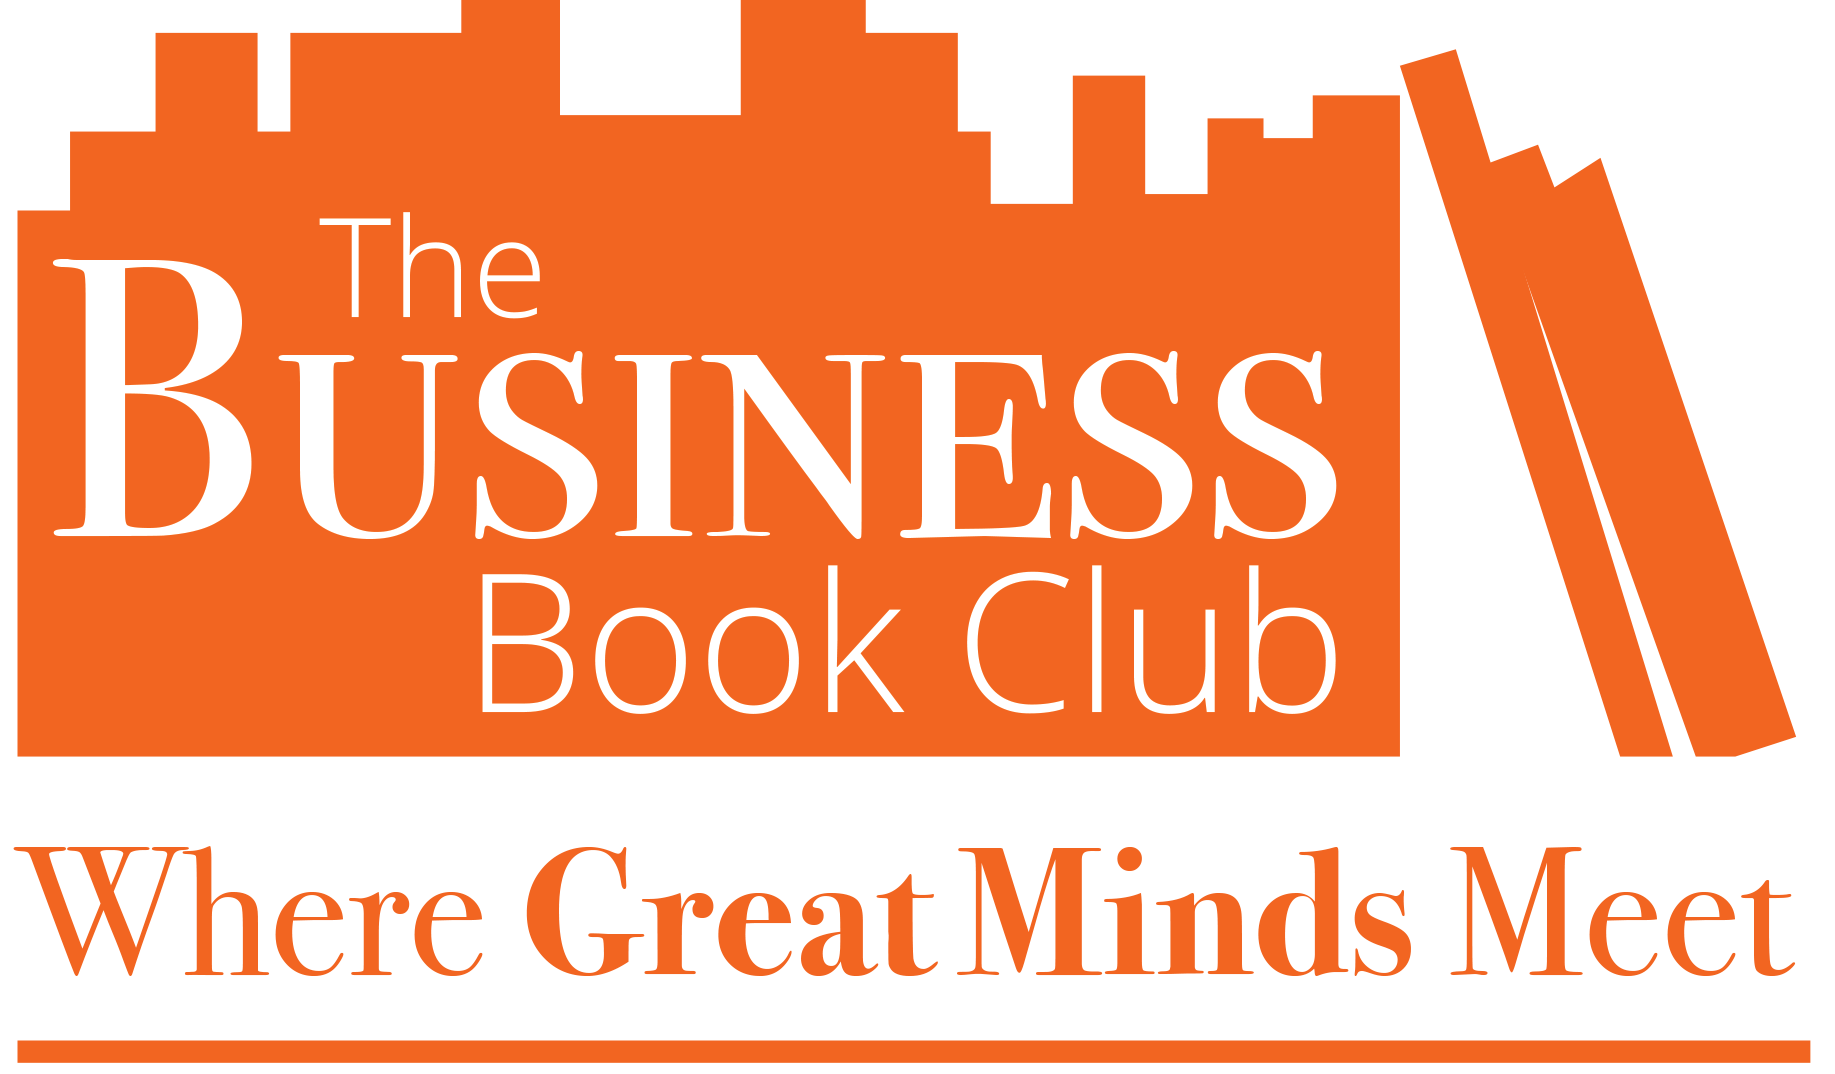 The Business Book Club